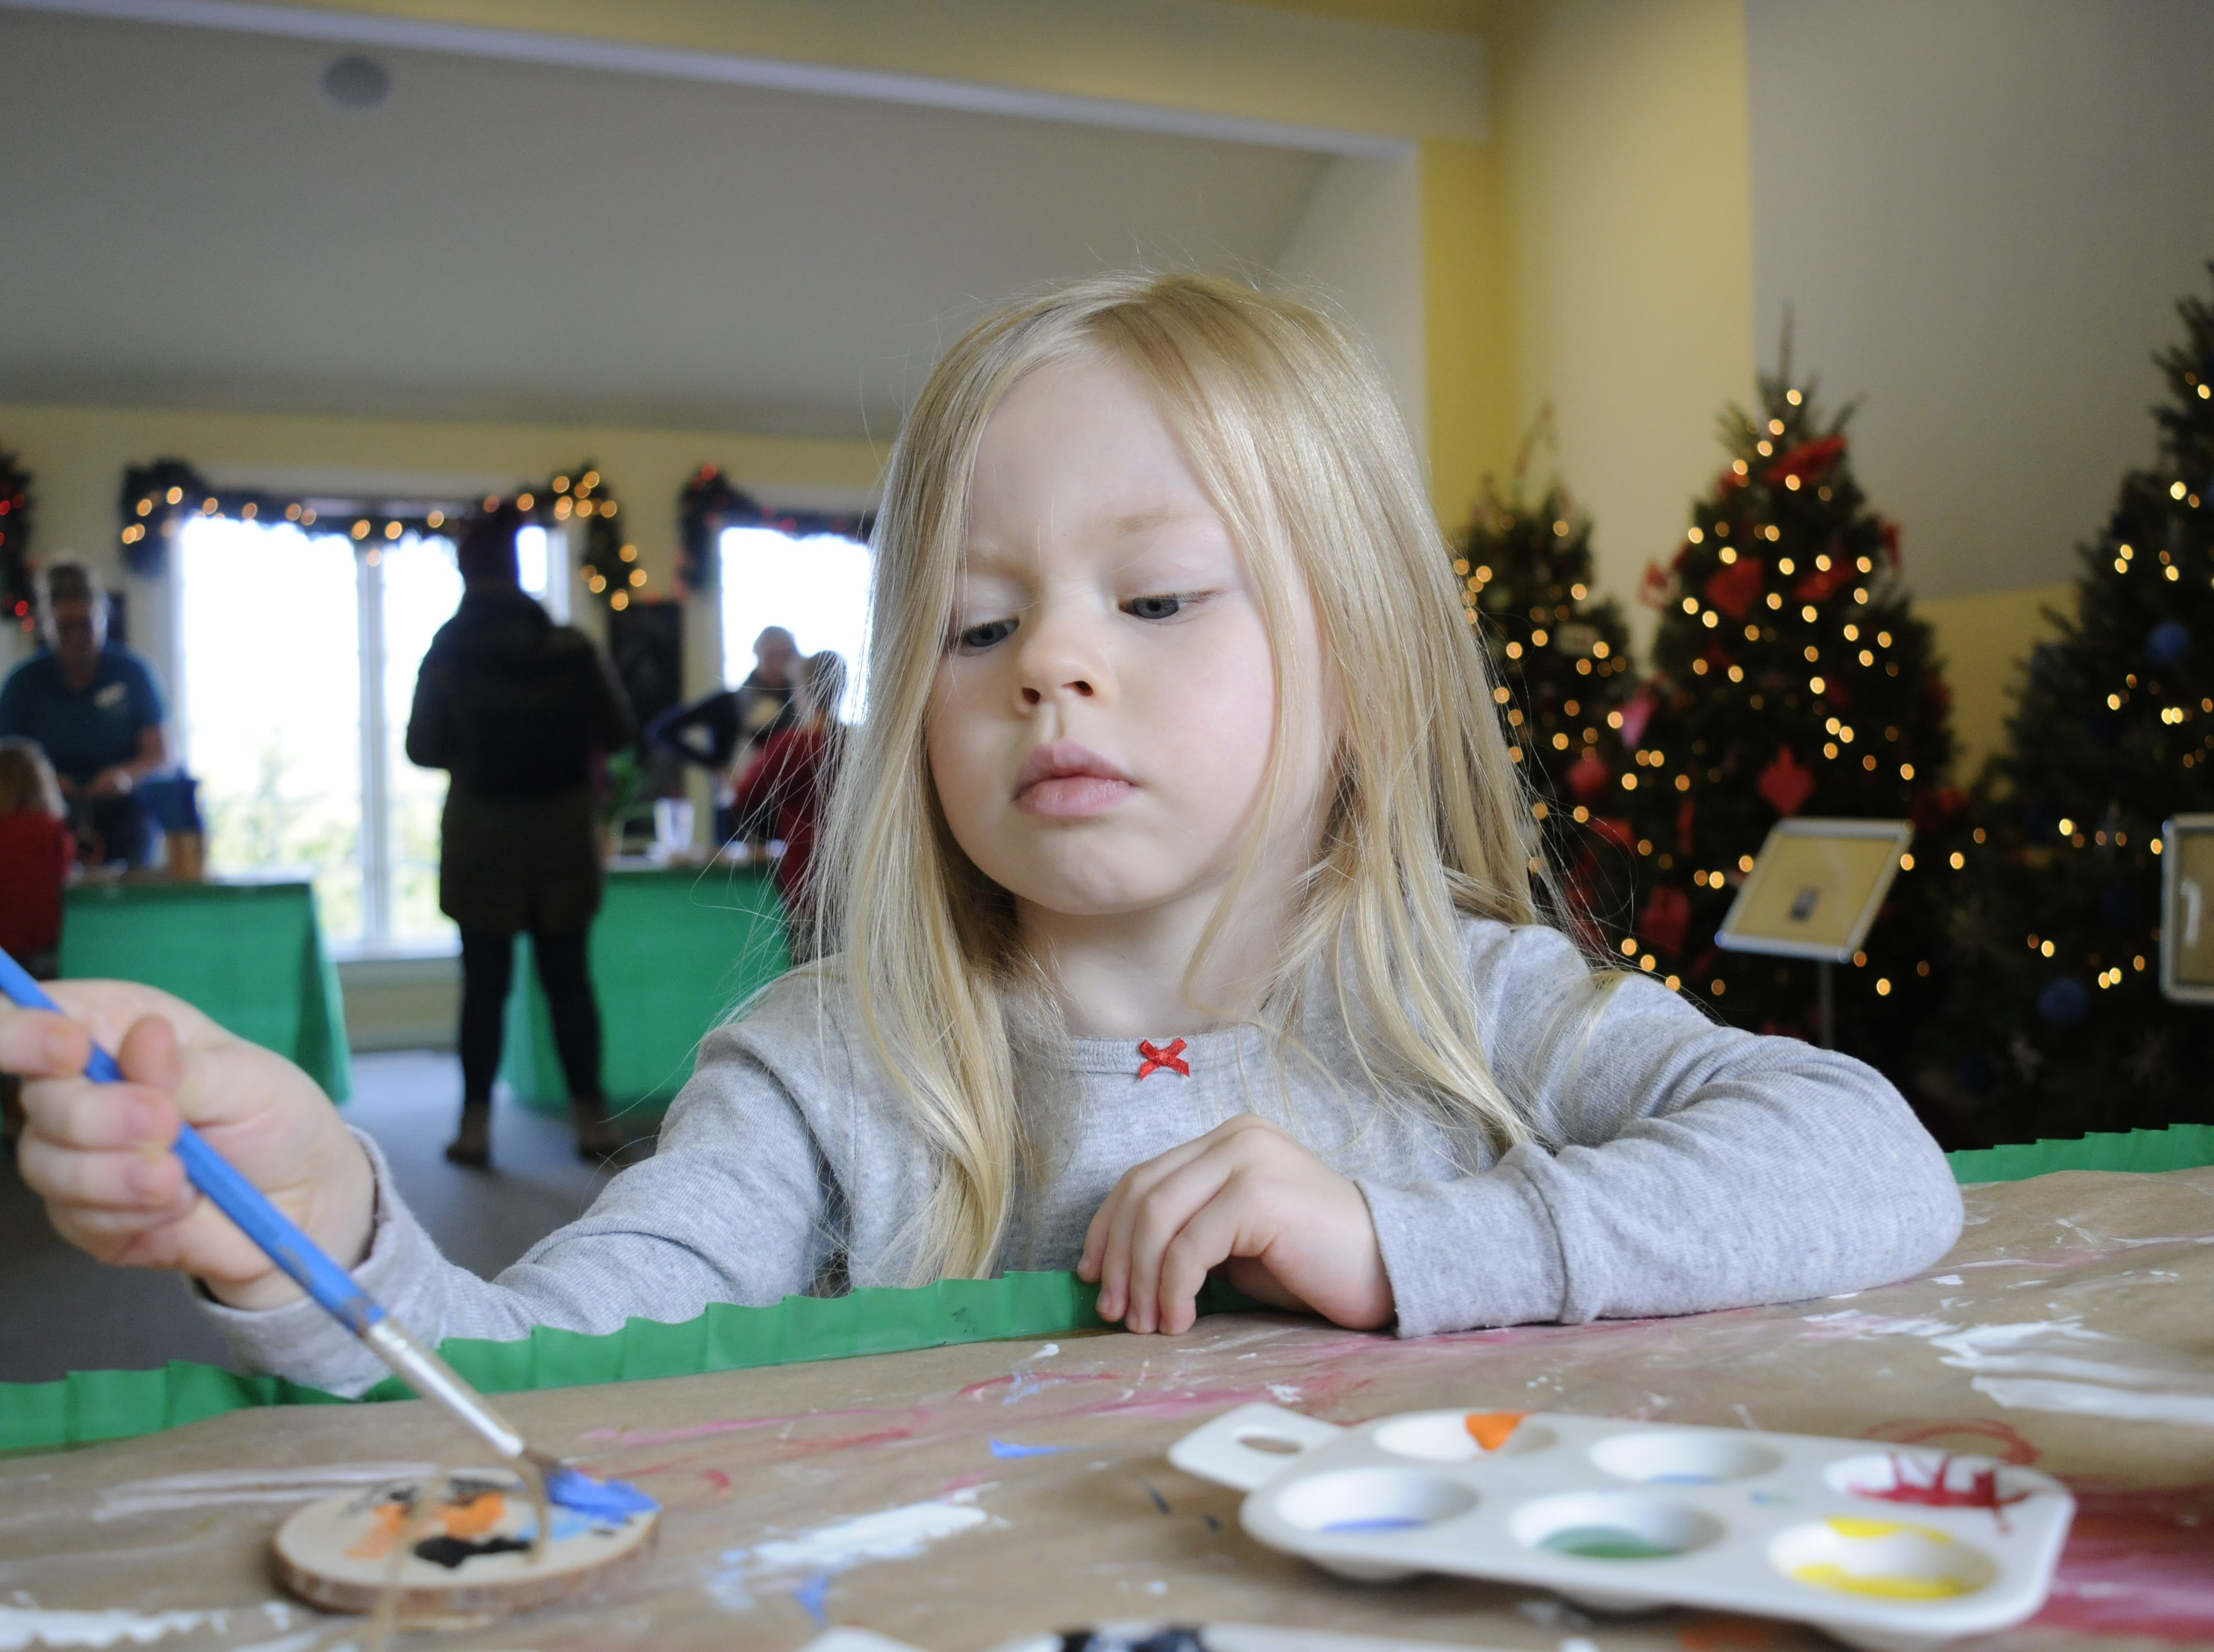 Families can stop by the Education Center, where kids can paint a wooden ornament to take home with them as well as create a special gift for winter birds.